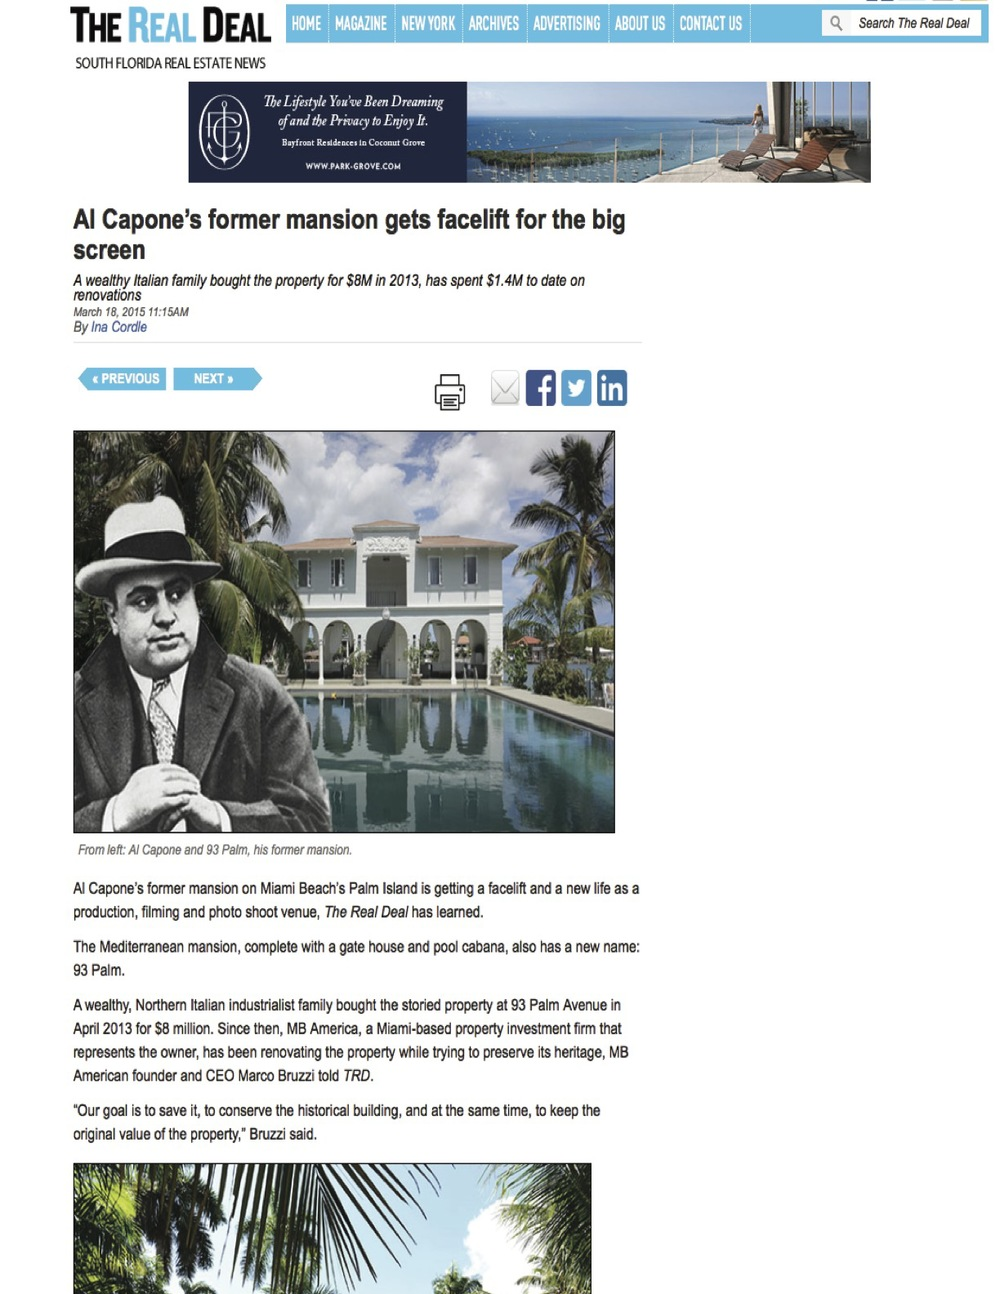 "<p><strong>The Real Deal</strong><a href=""http://therealdeal.com/miami/blog/2015/03/18/al-capones-former-mansion-gets-facelift-for-the-big-screen/"" target=""_blank"">View Article →</a></p>"